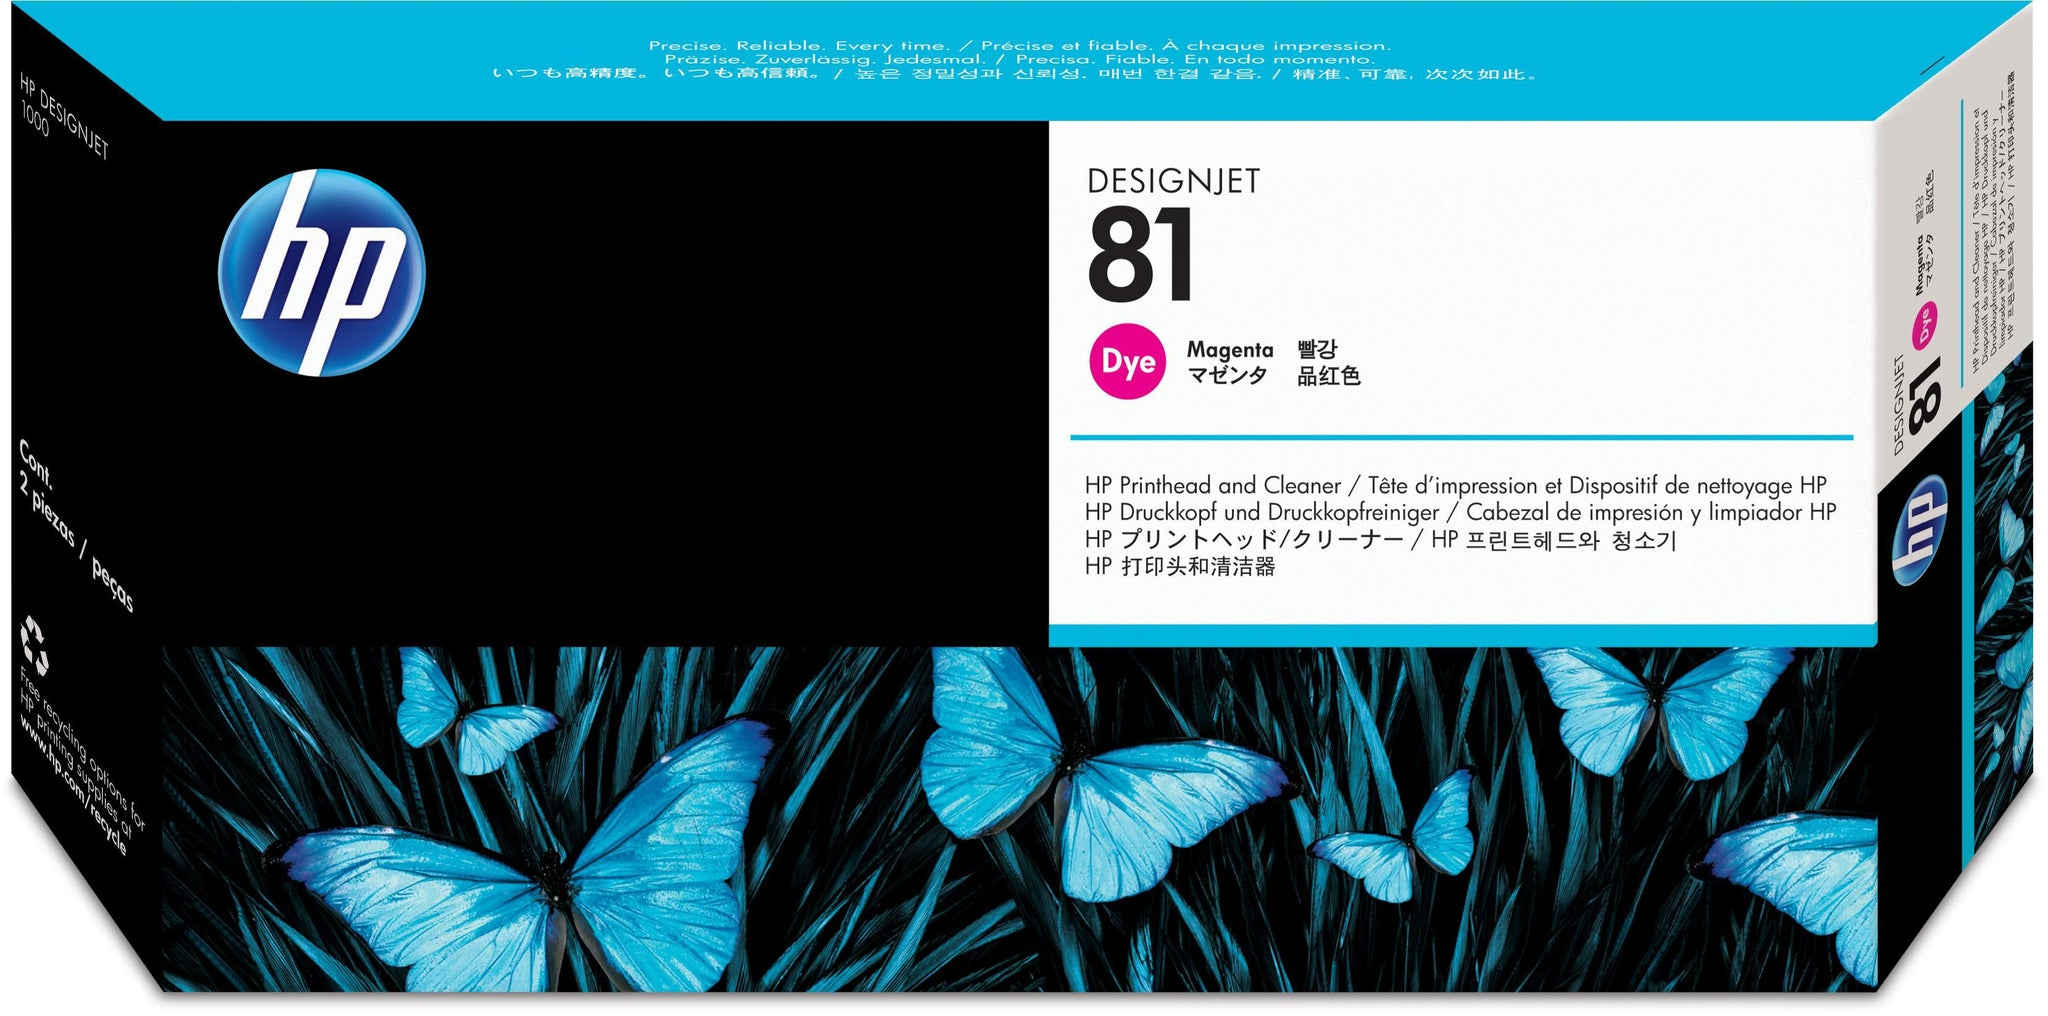 HP 81 Magenta Dye Printhead and Cleaner